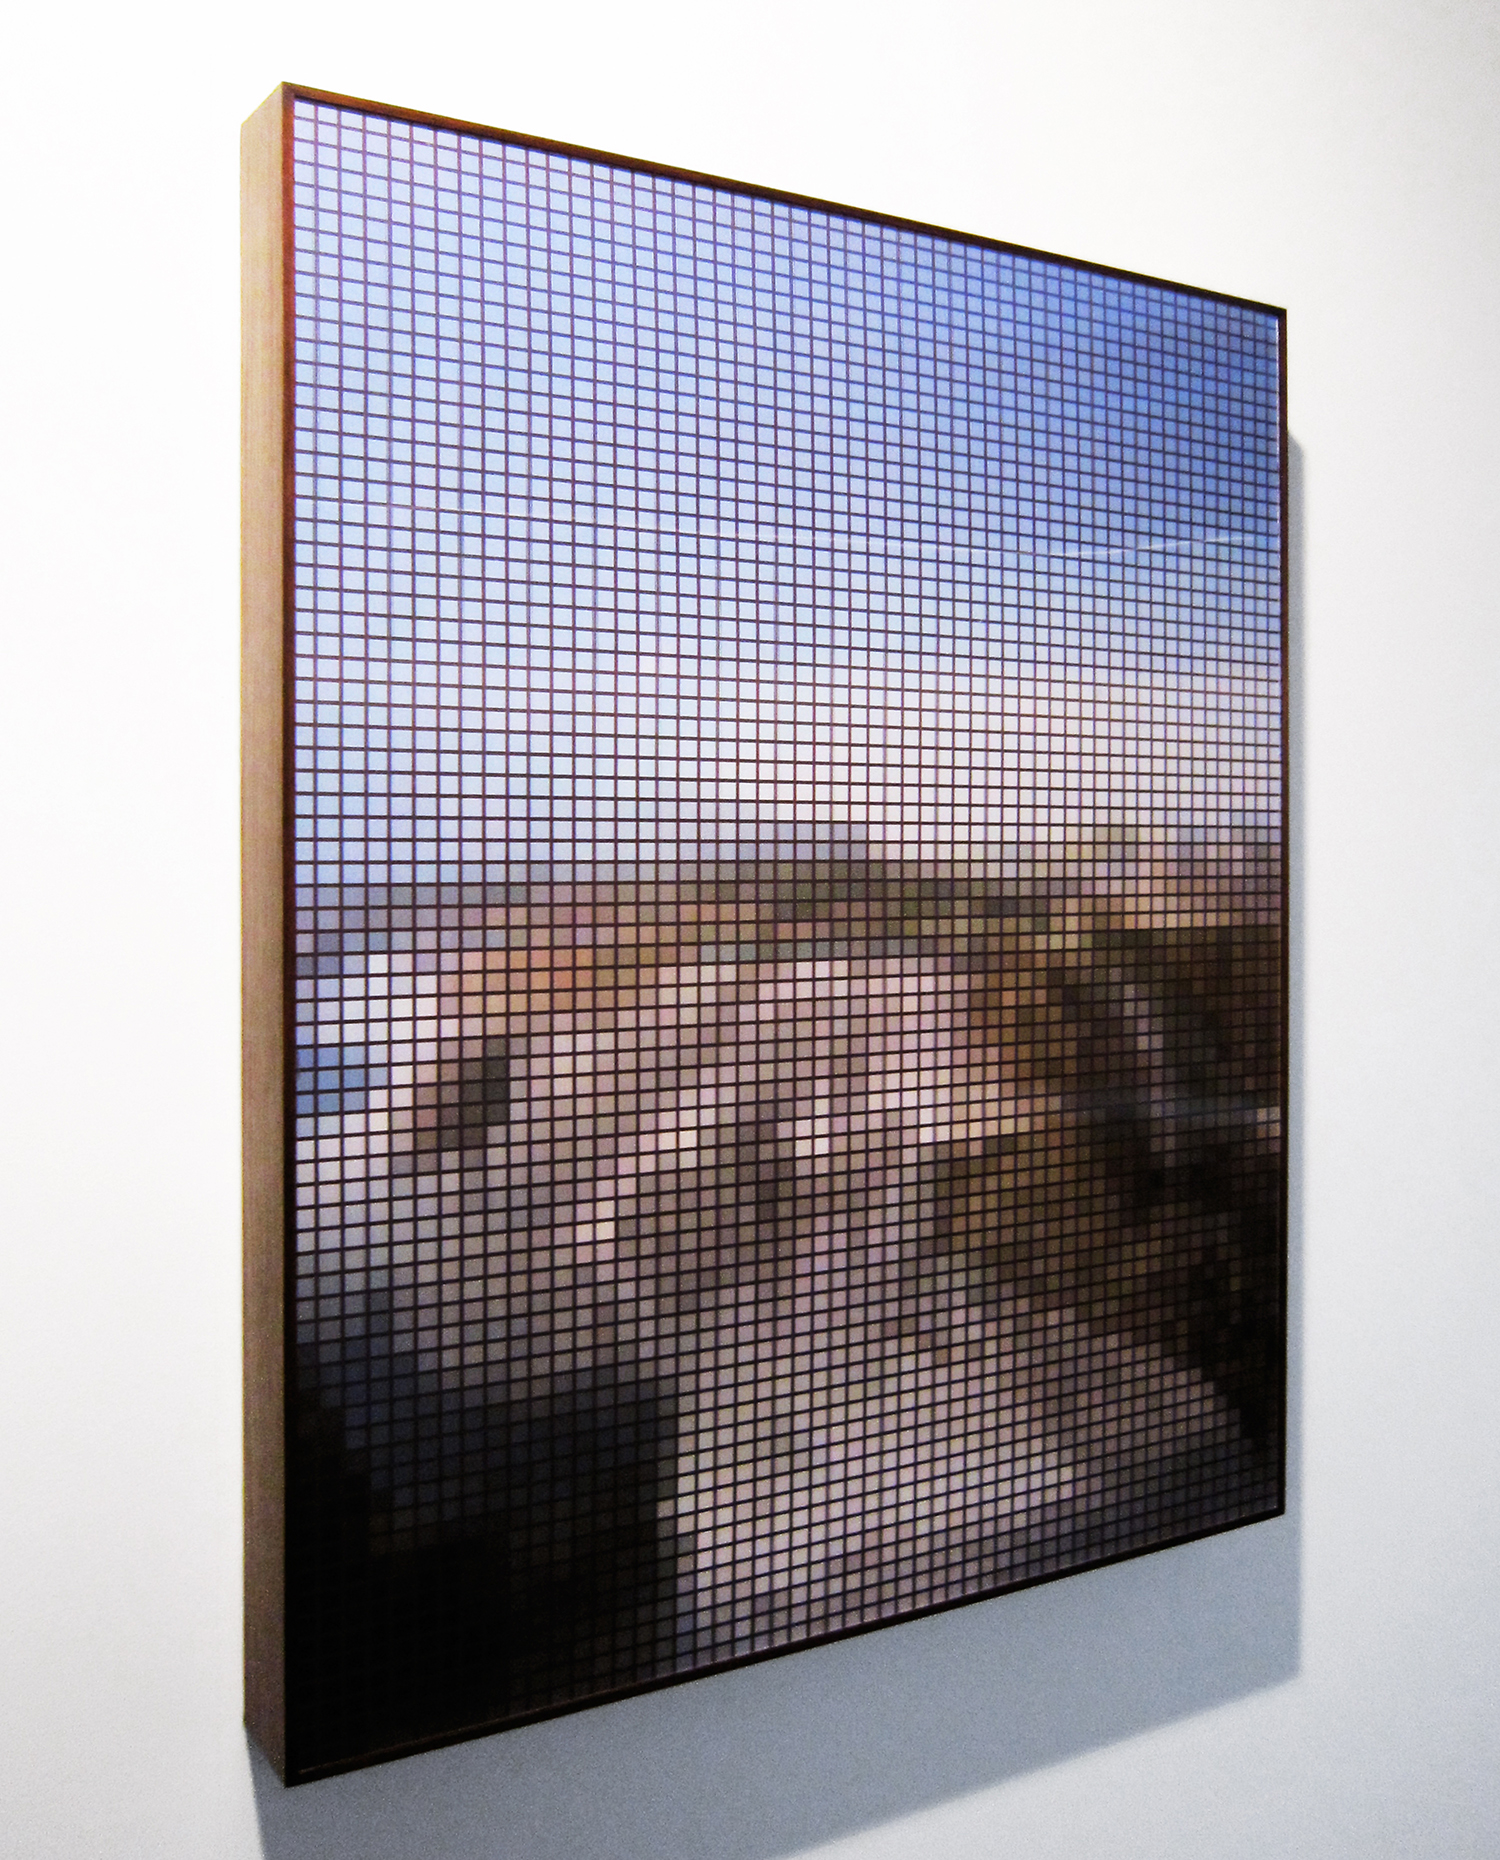 Paulo Afonso Falls (After Post) • 2010 •   Photograph, lenticular print     •   39.3   x 29.5 in